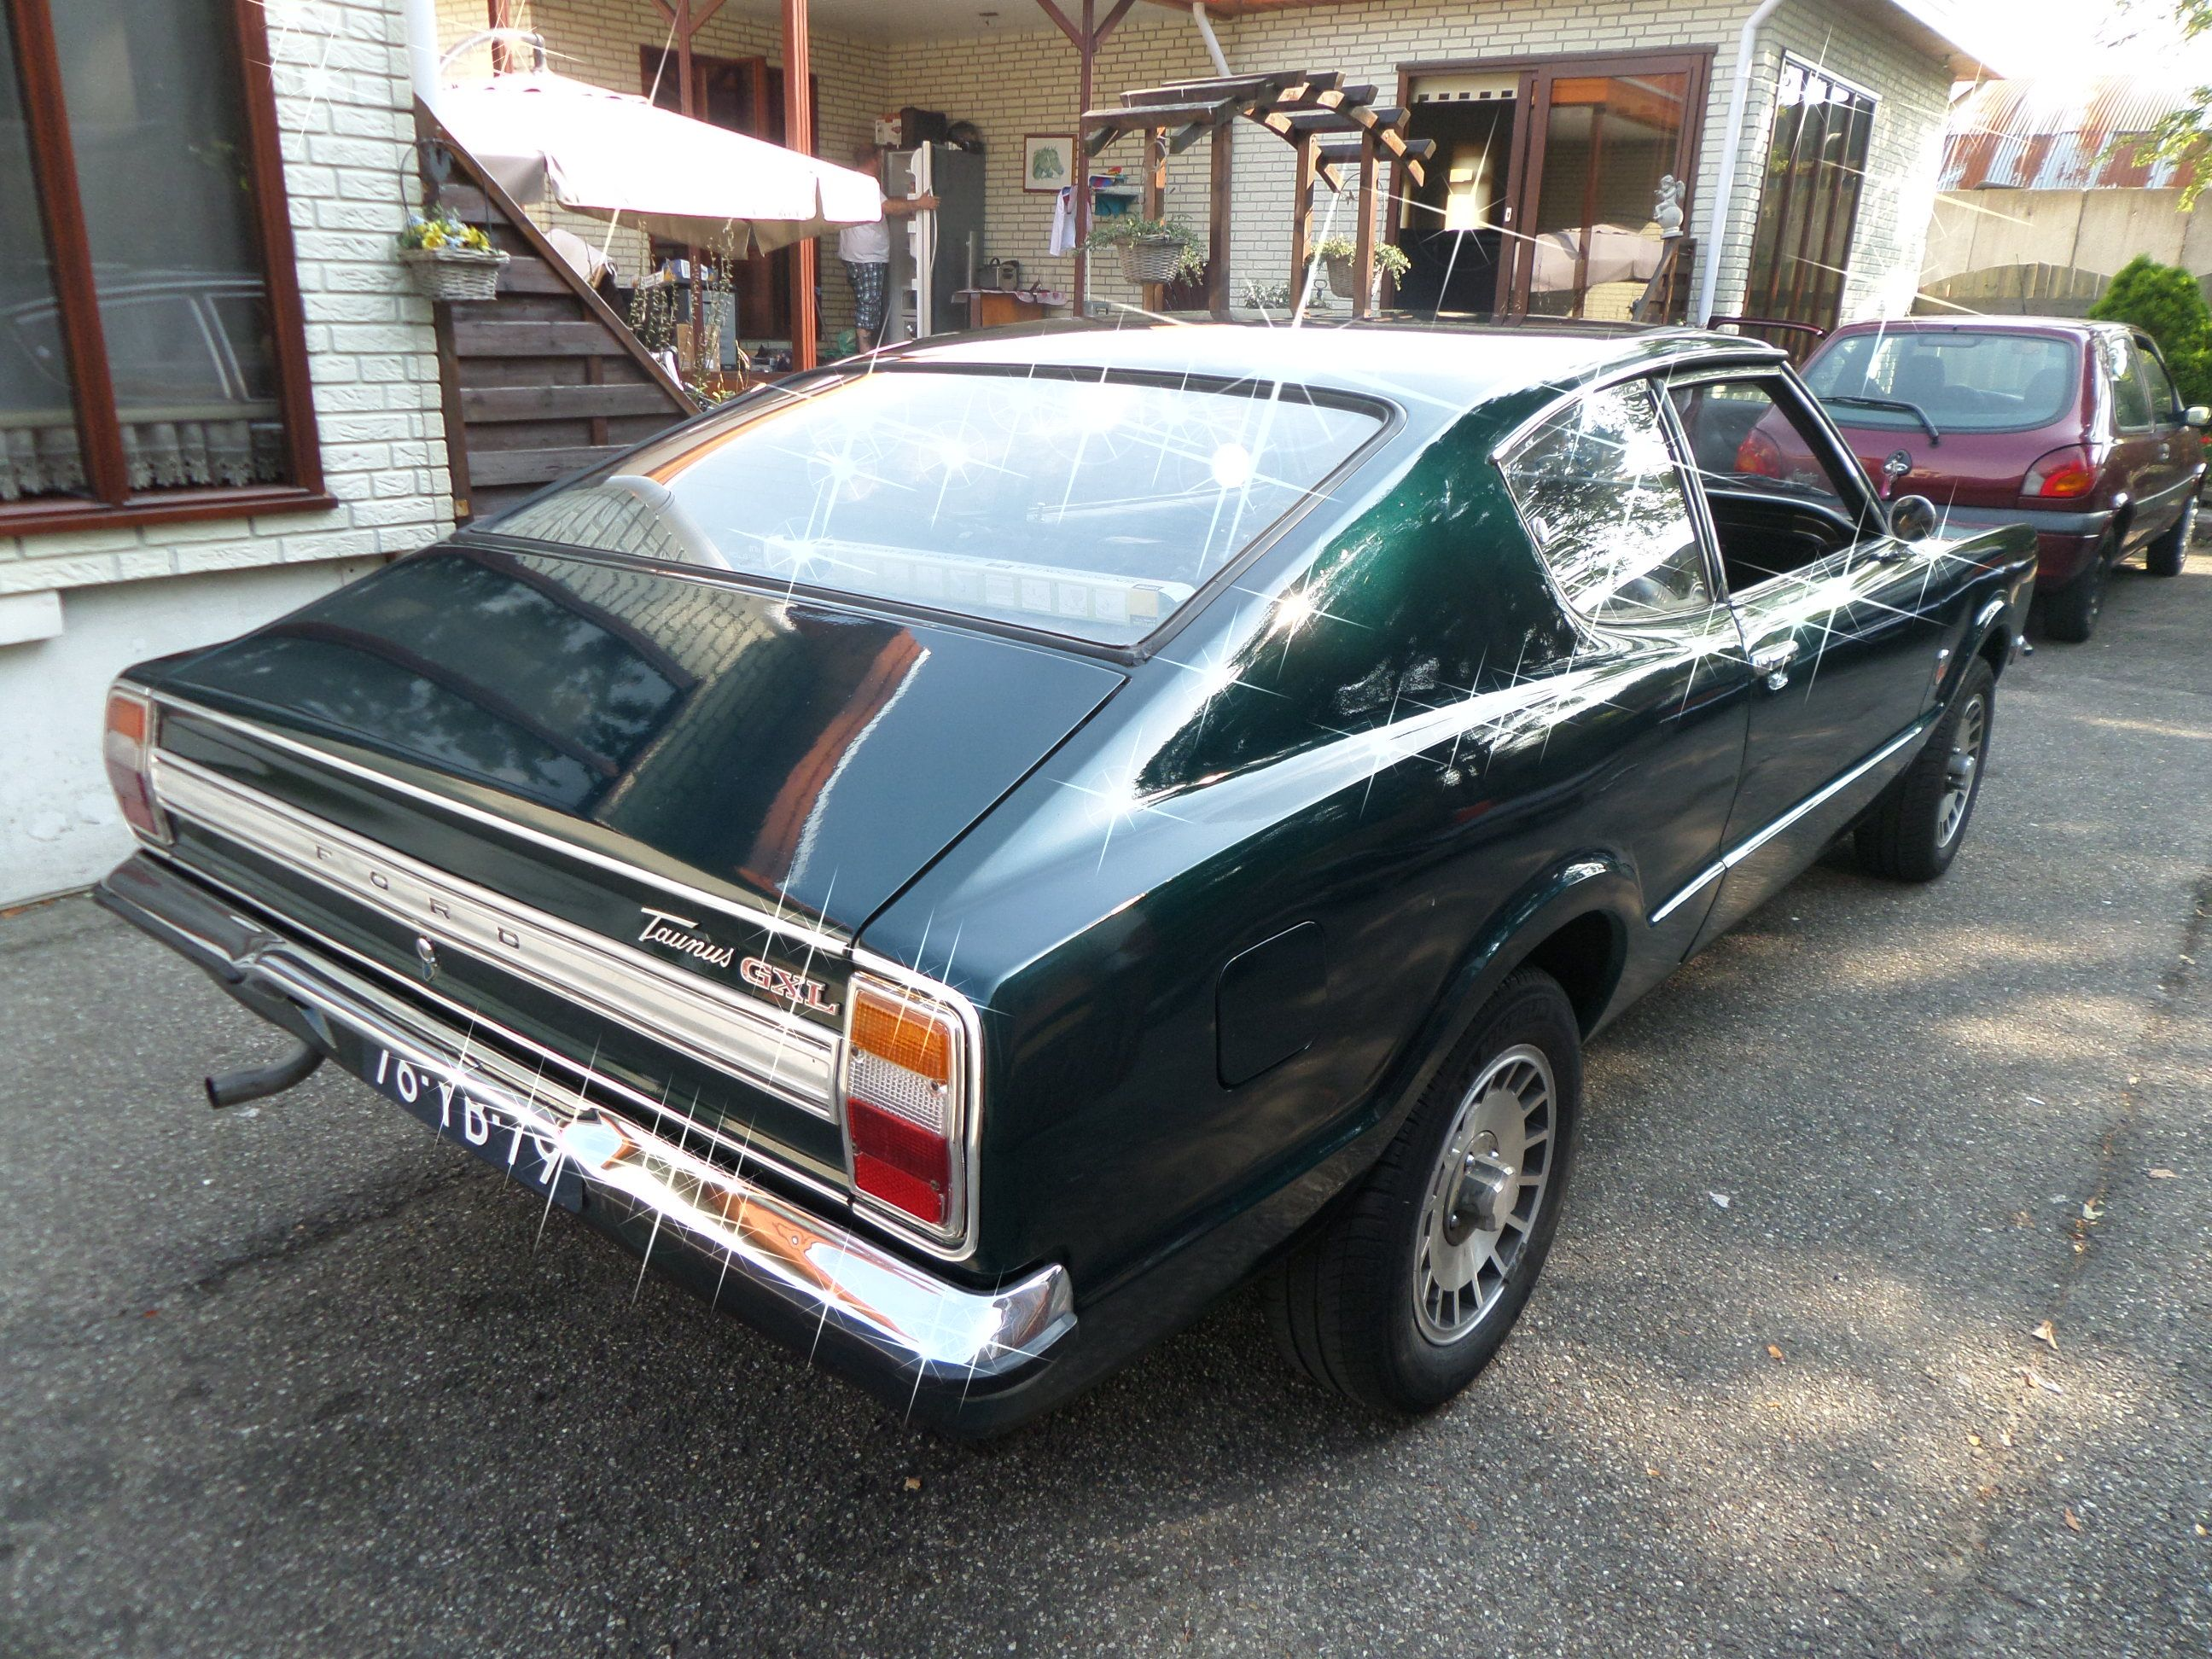 mijn eigen ford taunus tc1 coupe 1973 cars bikes pinterest ford and cars. Black Bedroom Furniture Sets. Home Design Ideas